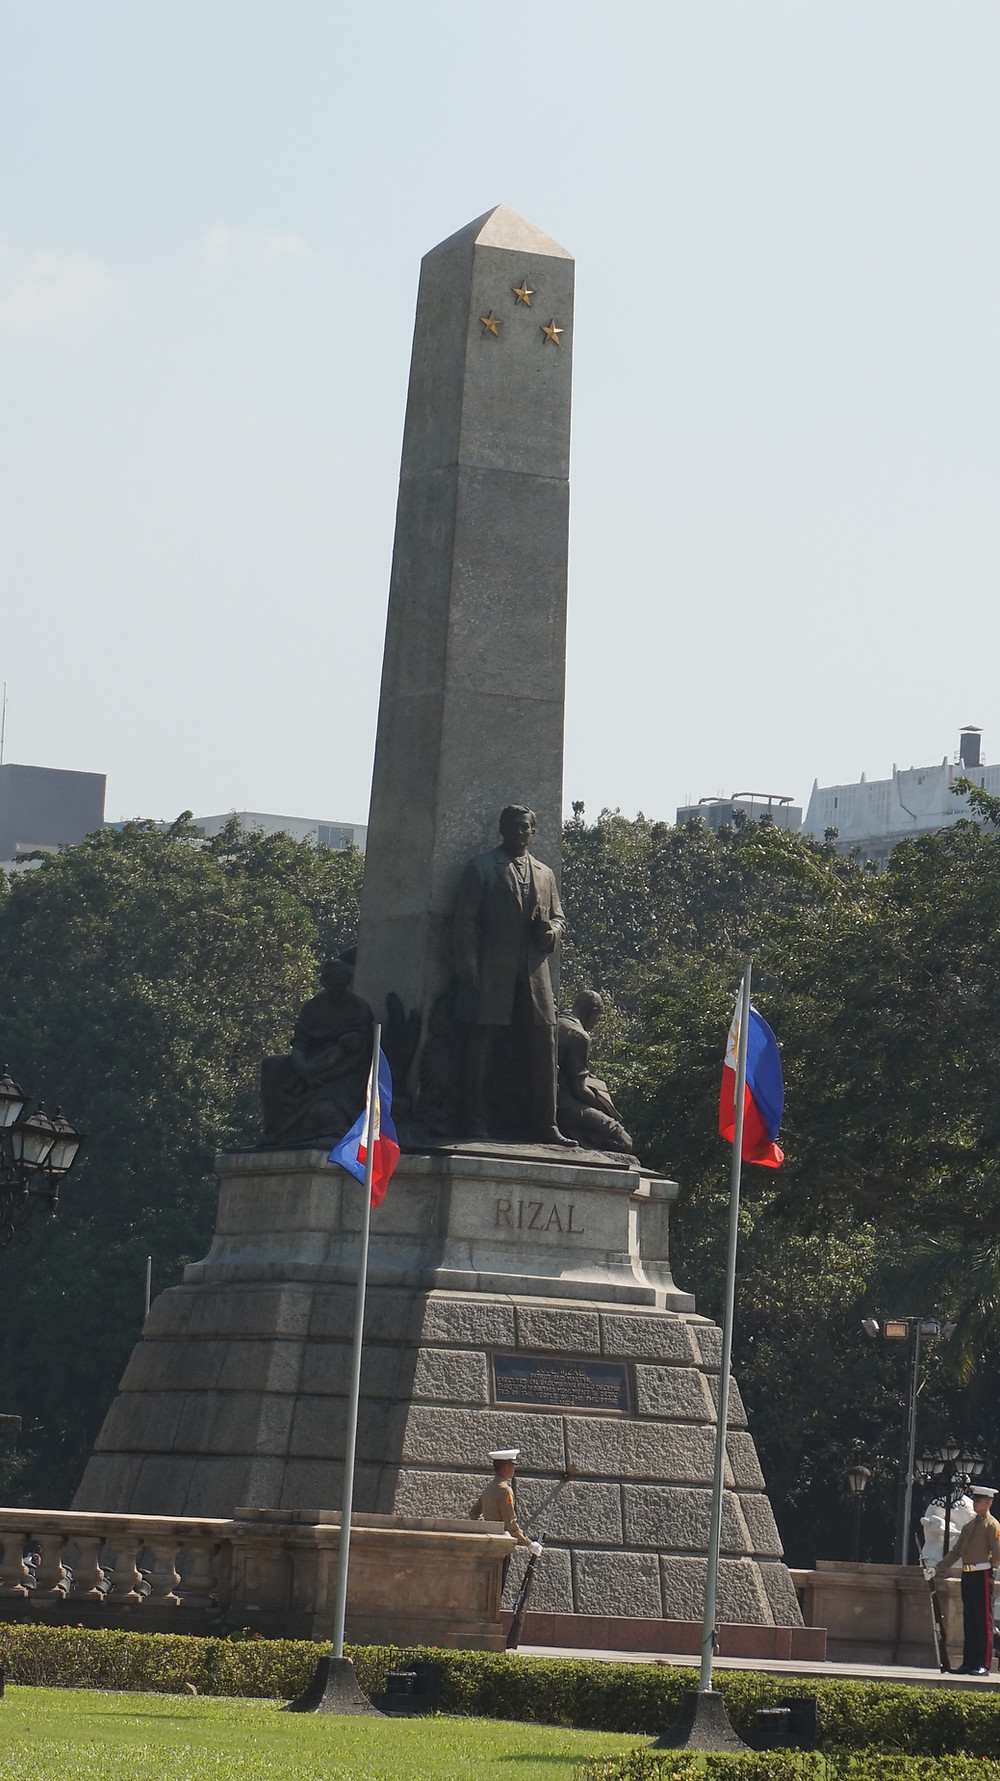 Dr. Jpse Rizal national hero of the Philippine